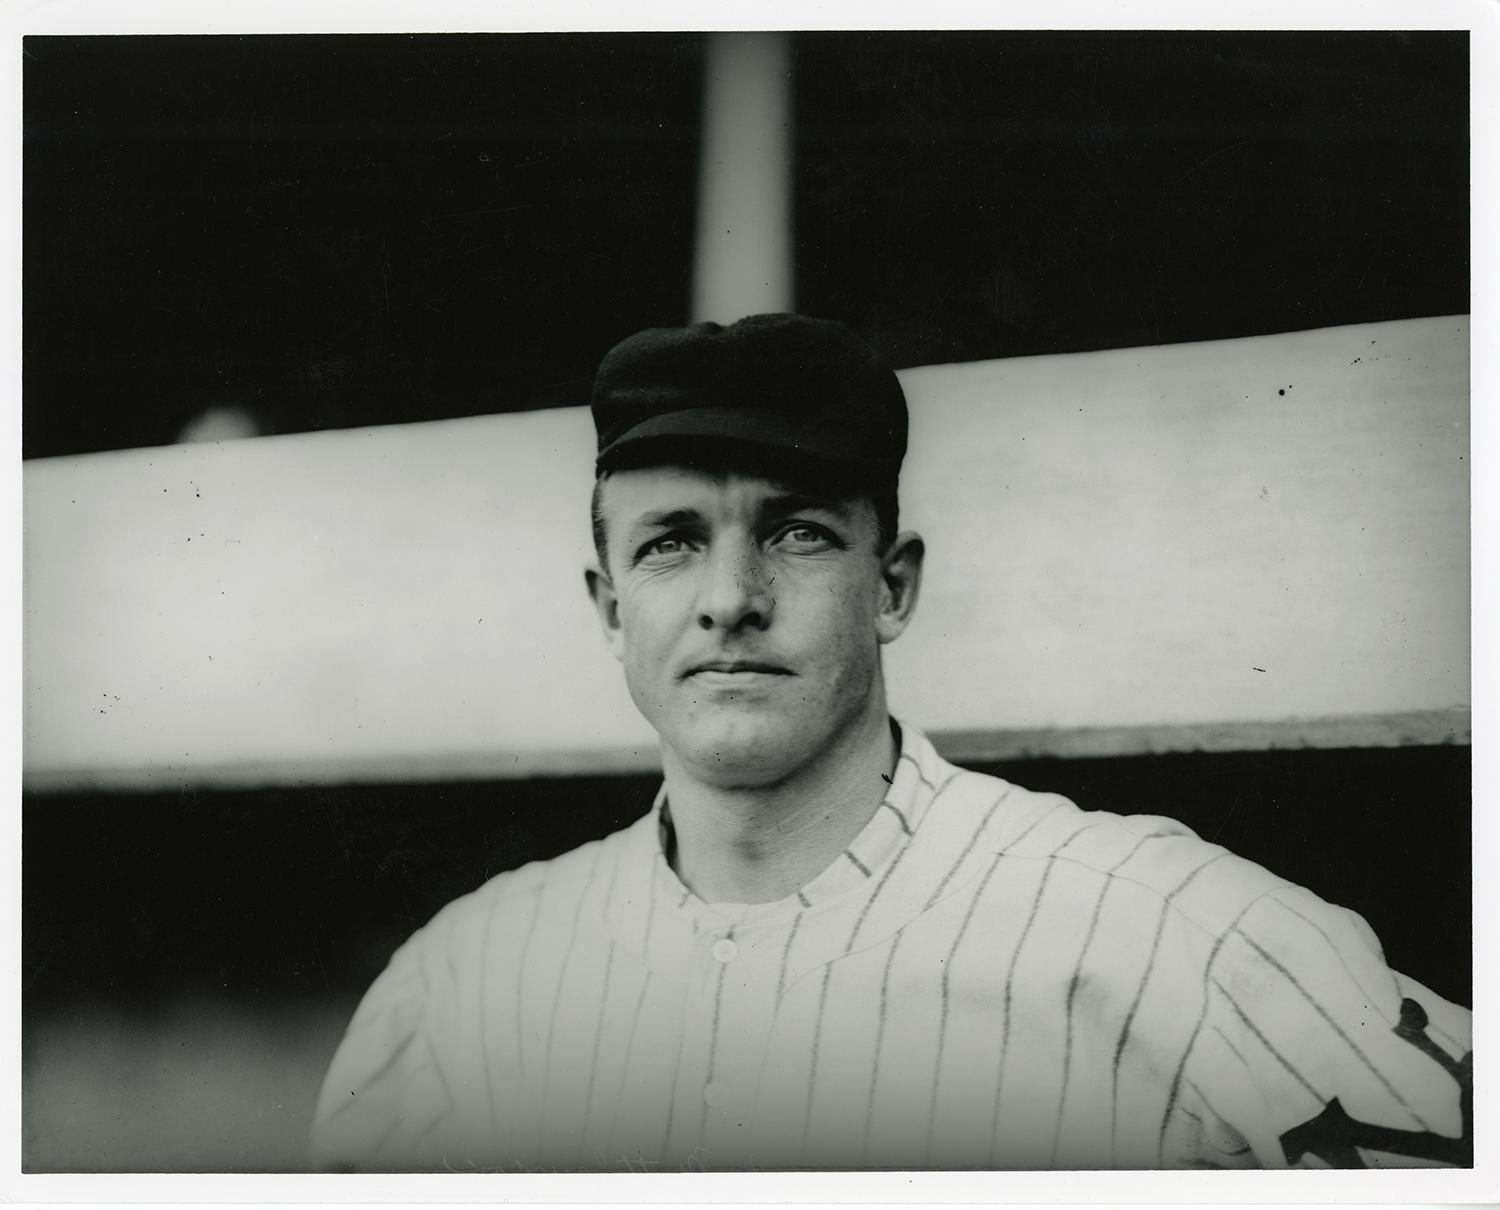 Christy Mathewson was a devout Baptist from an early age, continuing to practice Christianity throughout his professional baseball career. (Charles Conlon / National Baseball Hall of Fame)